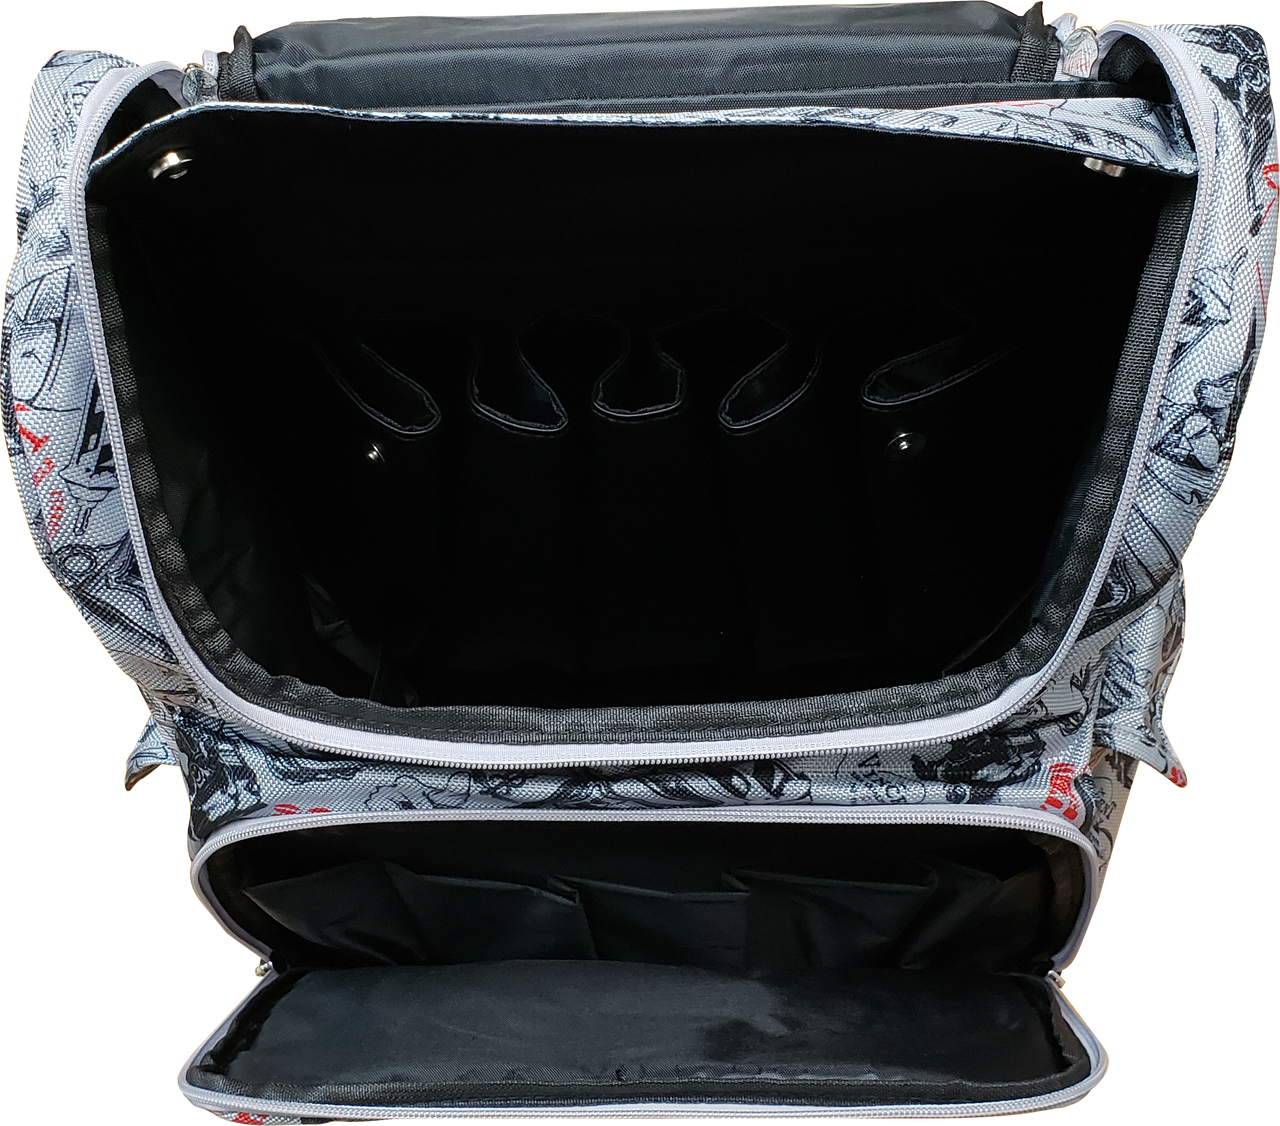 Example of Inside Main Compartment